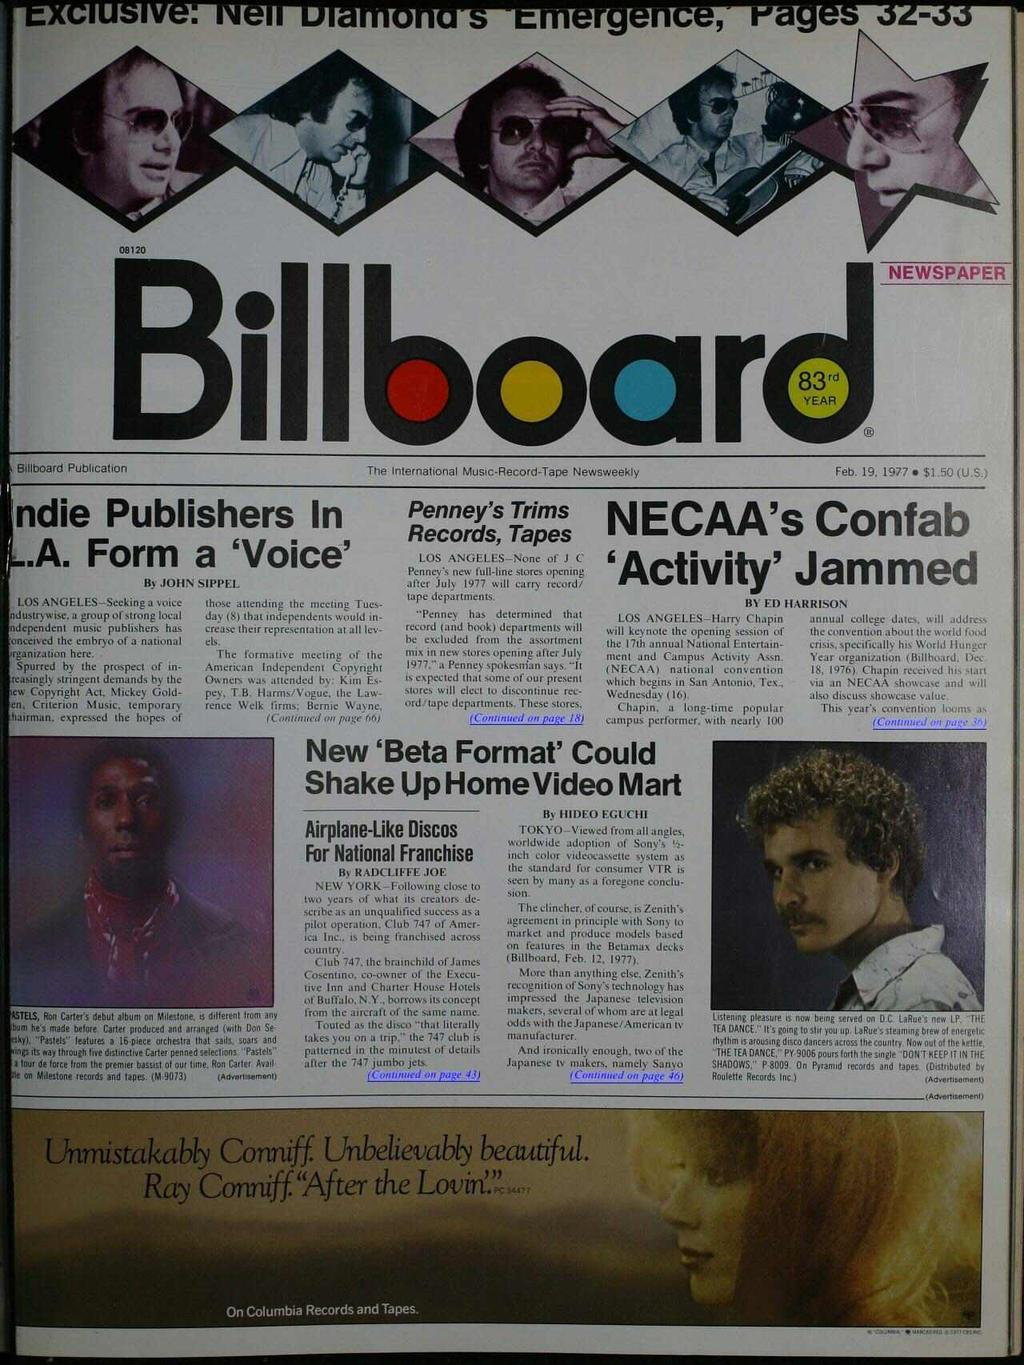 Bioar Billboard Publication The nternational Music- Record -Tape Newsweekly Feb. 19, 1977 NEWSPAPER $1.50 (U.S.) ndie Publishers n A. Form a `Voice' B JOHN SPPE.